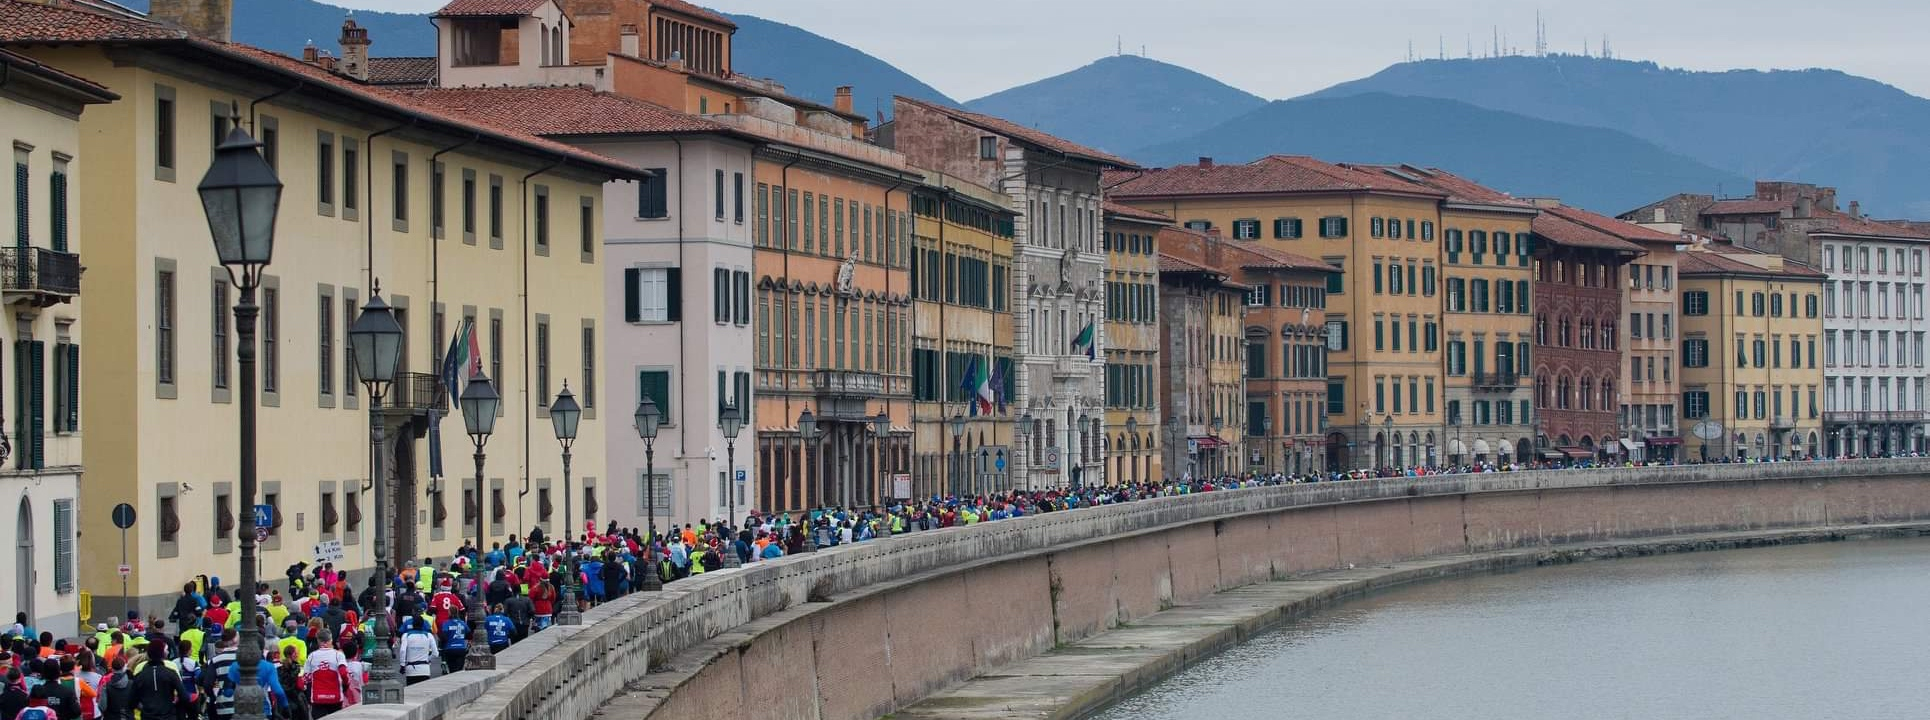 Race day on Arno river banks